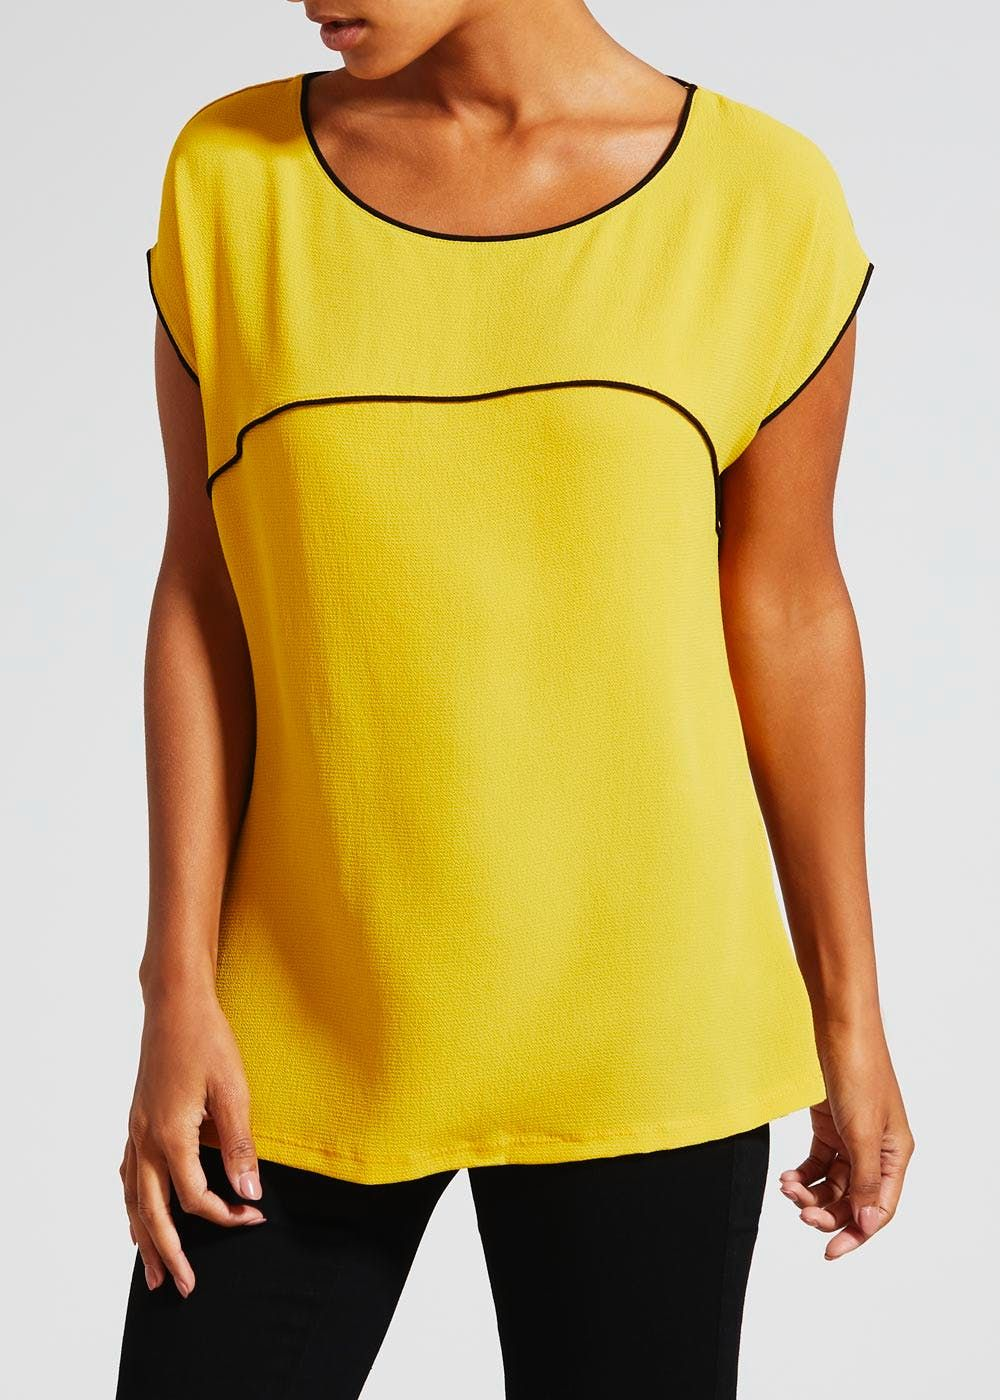 1a9e8ddcbef Add a pop of bold colour to your work to weekend top-picks. This vibrant  yellow woven front top is crafted with a soft jersey back and features  contrast.